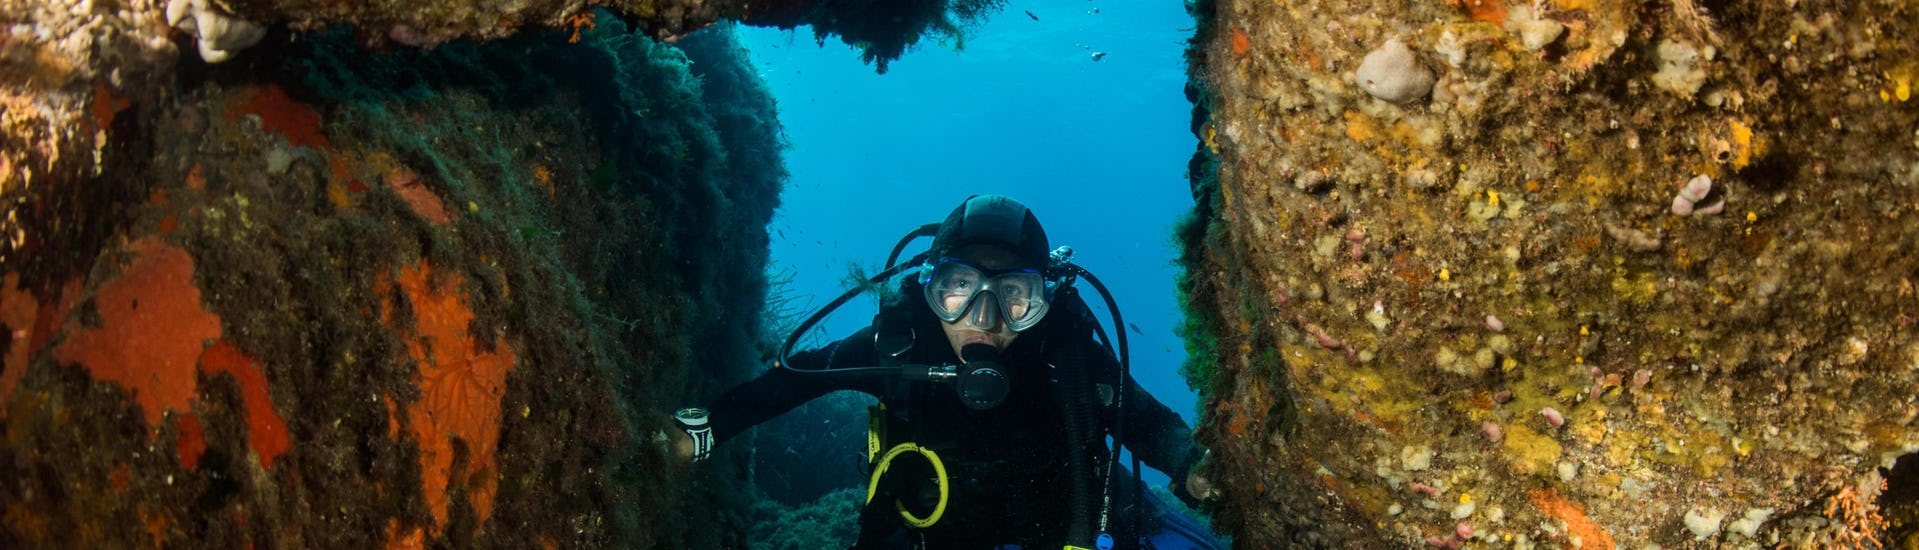 A diver is enjoying the seabed in Haute-Corse, Corsica during a diving excursion.